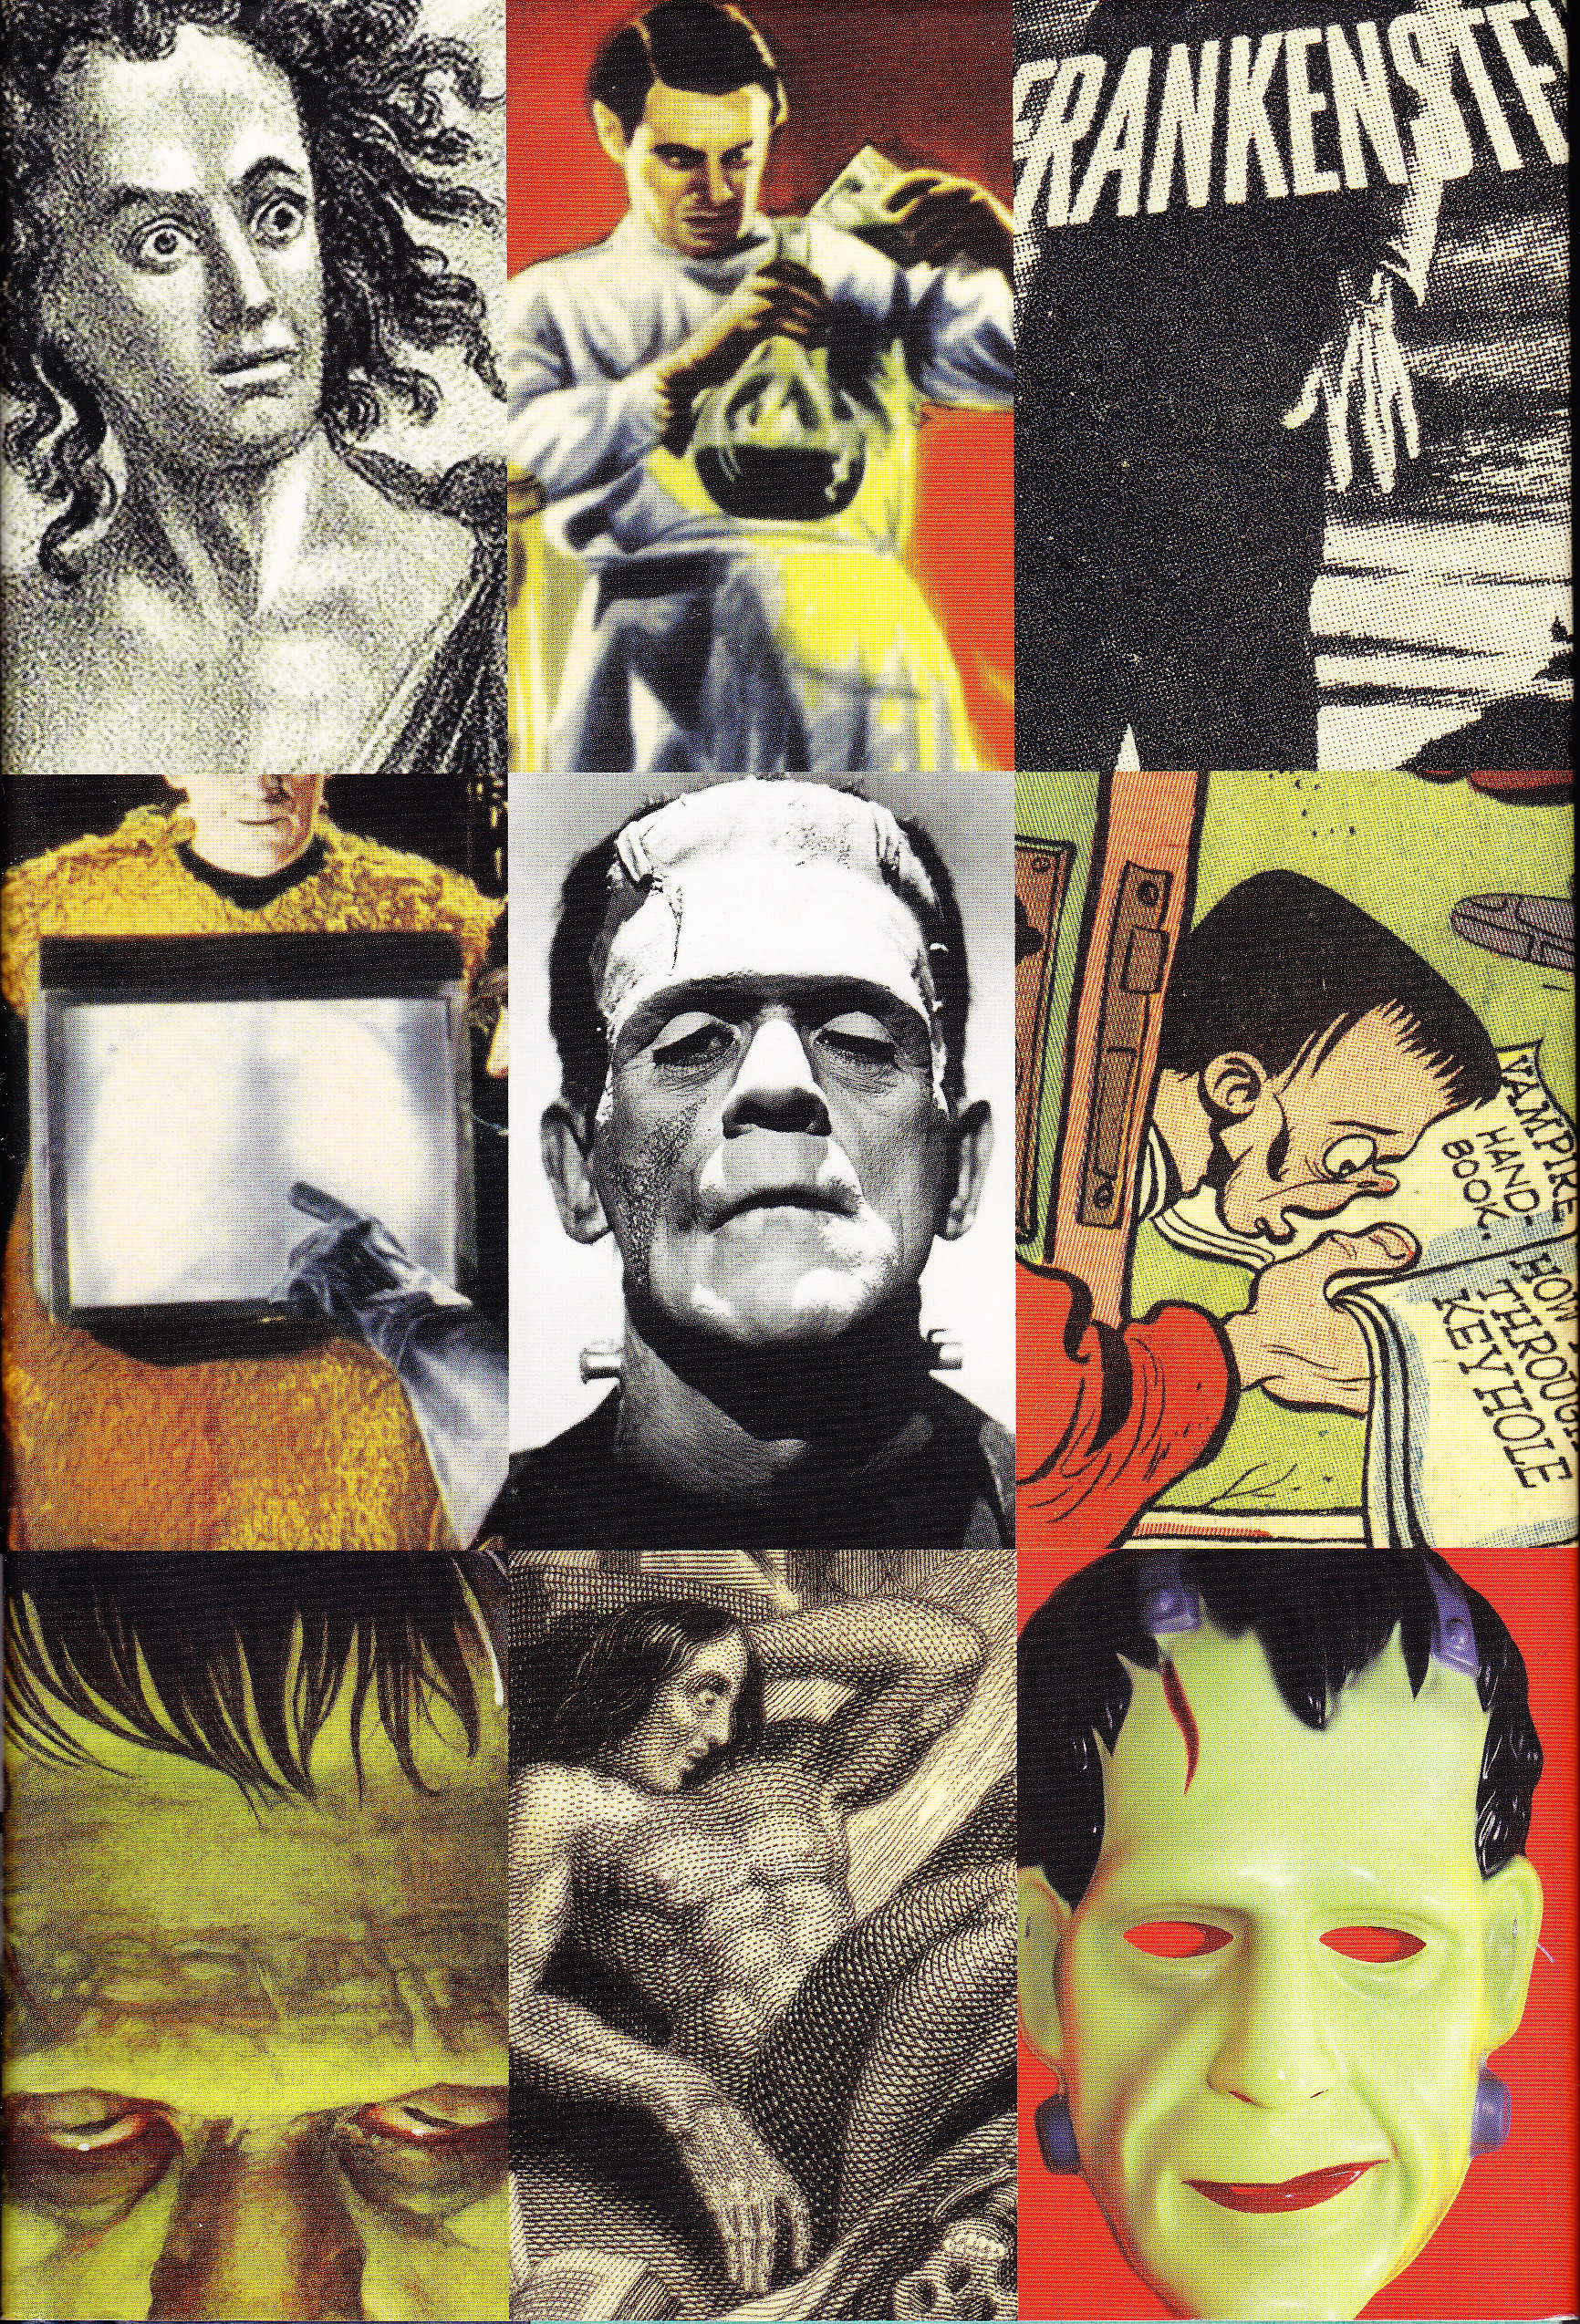 frankenstein an allegory of liberal parenting essay